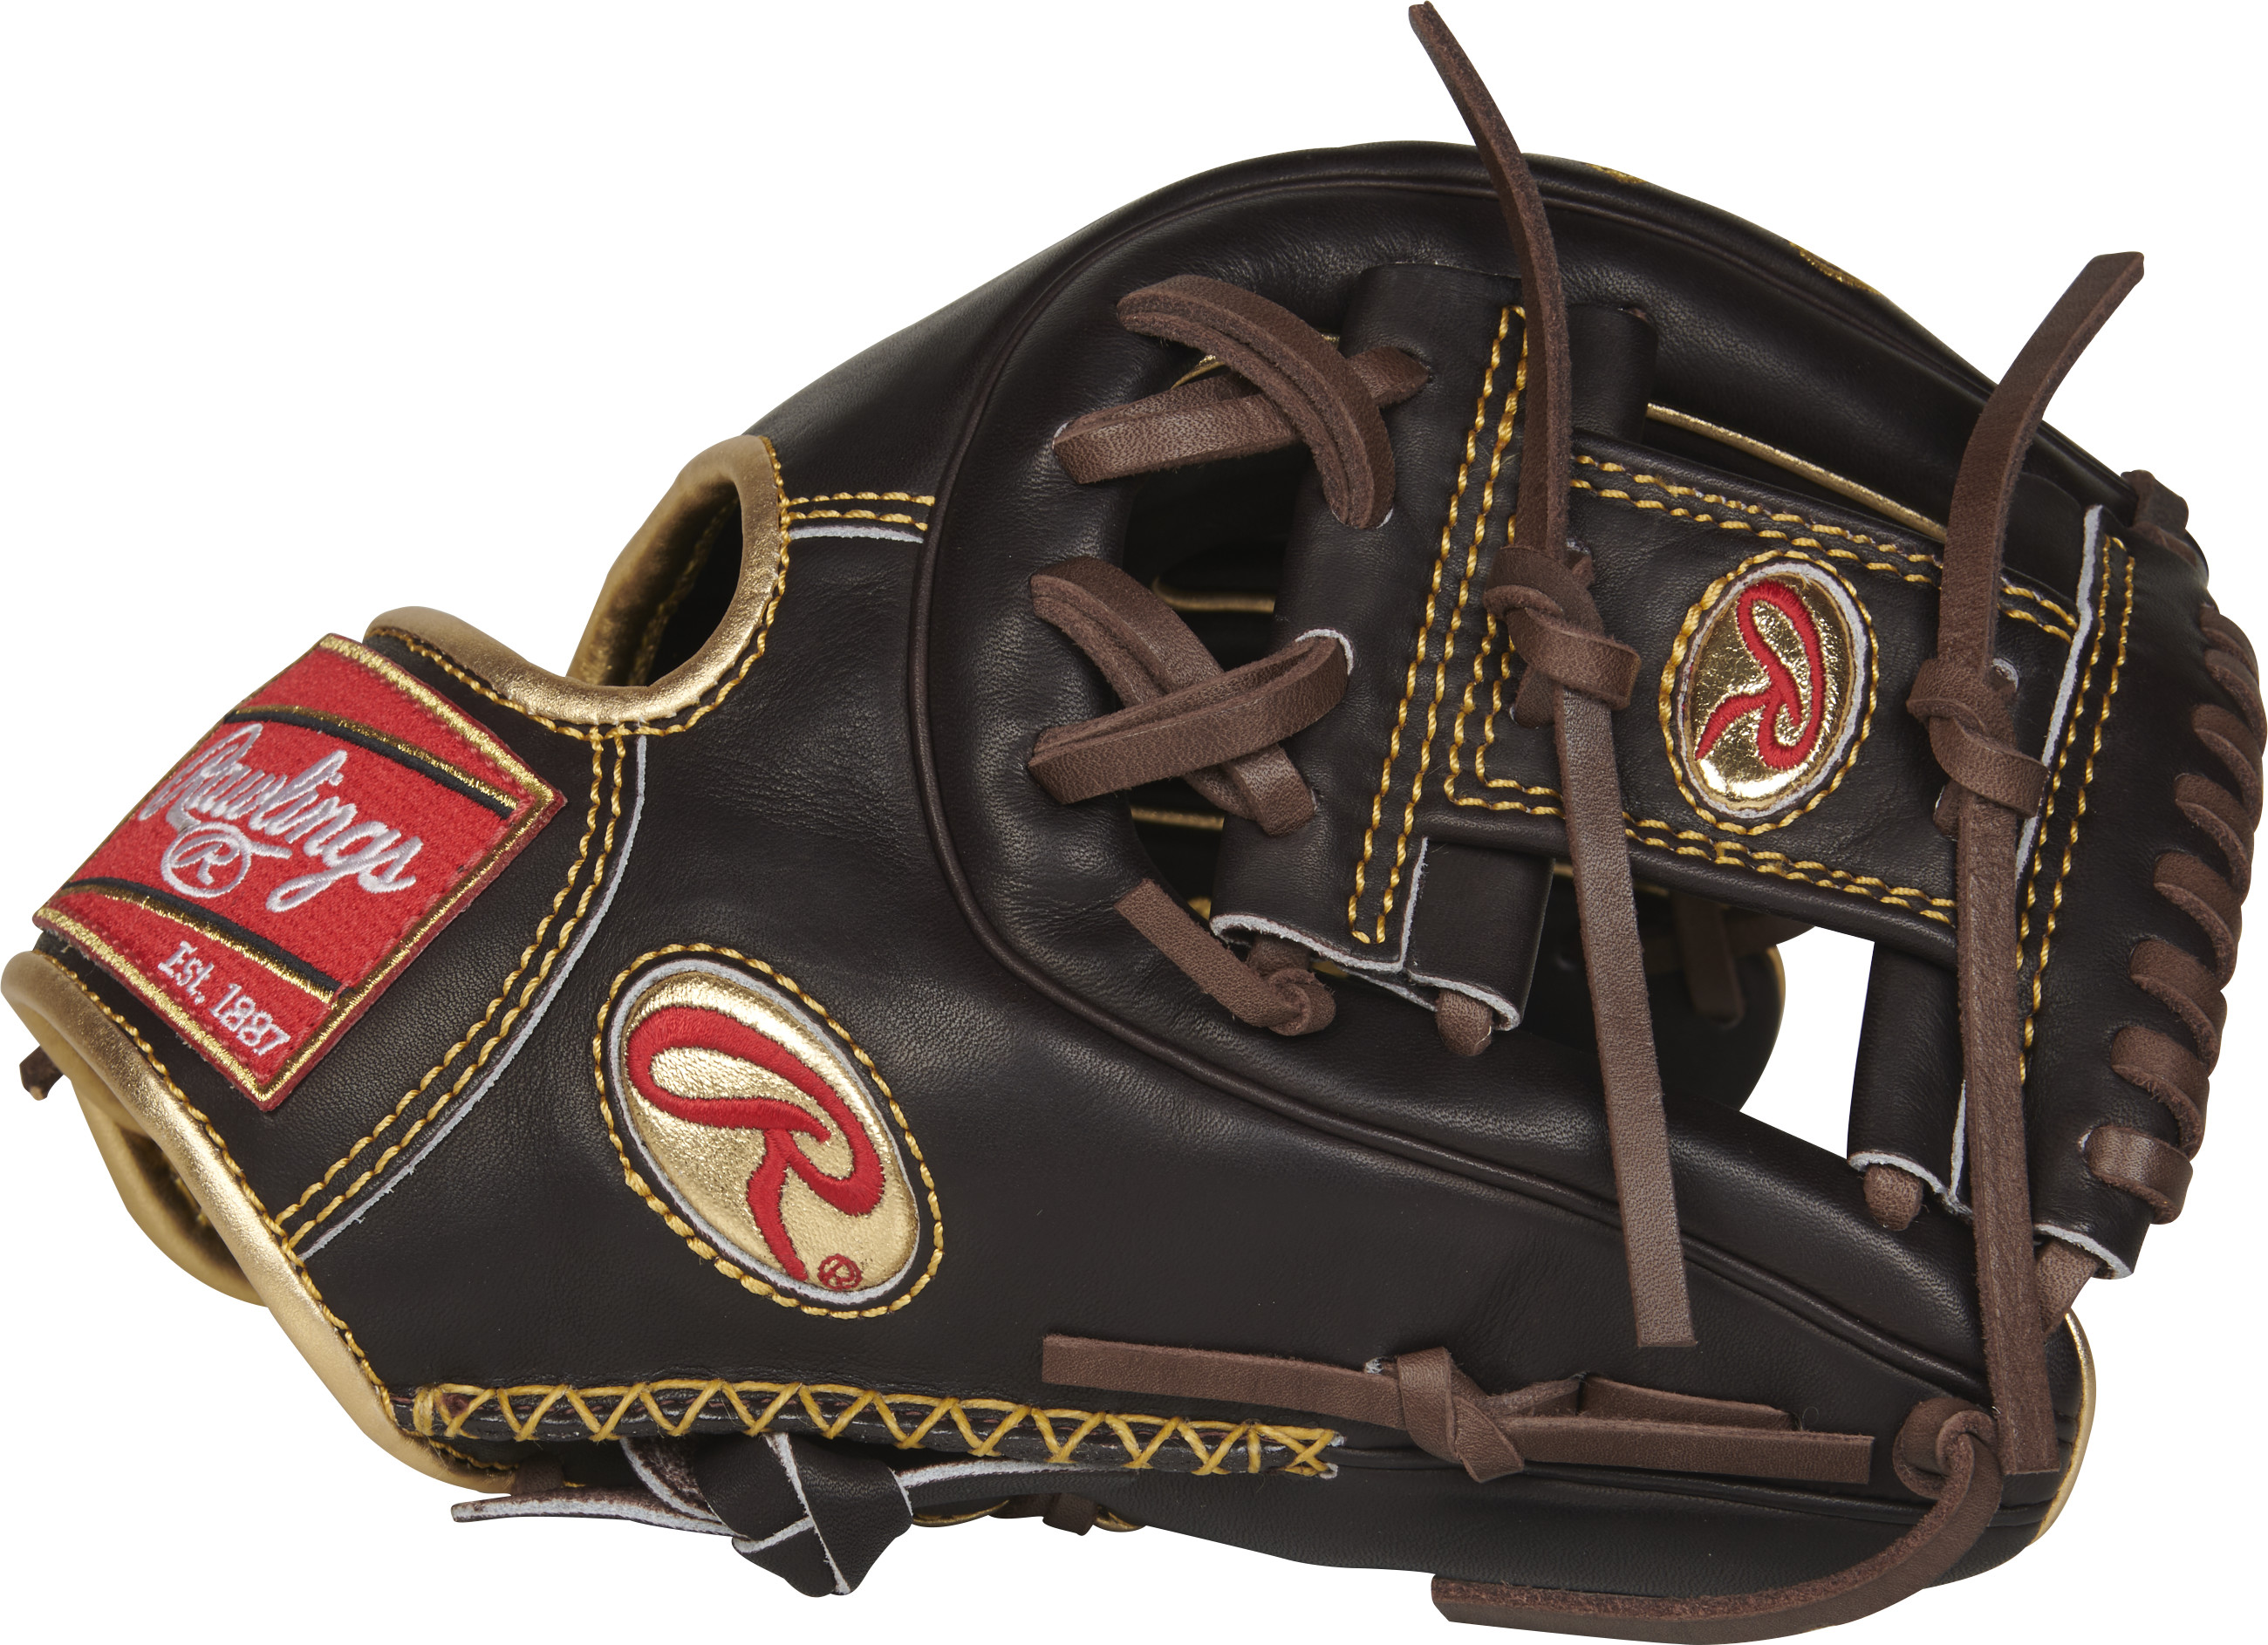 http://www.bestbatdeals.com/images/gloves/rawlings/RGG314-2MO-3.jpg